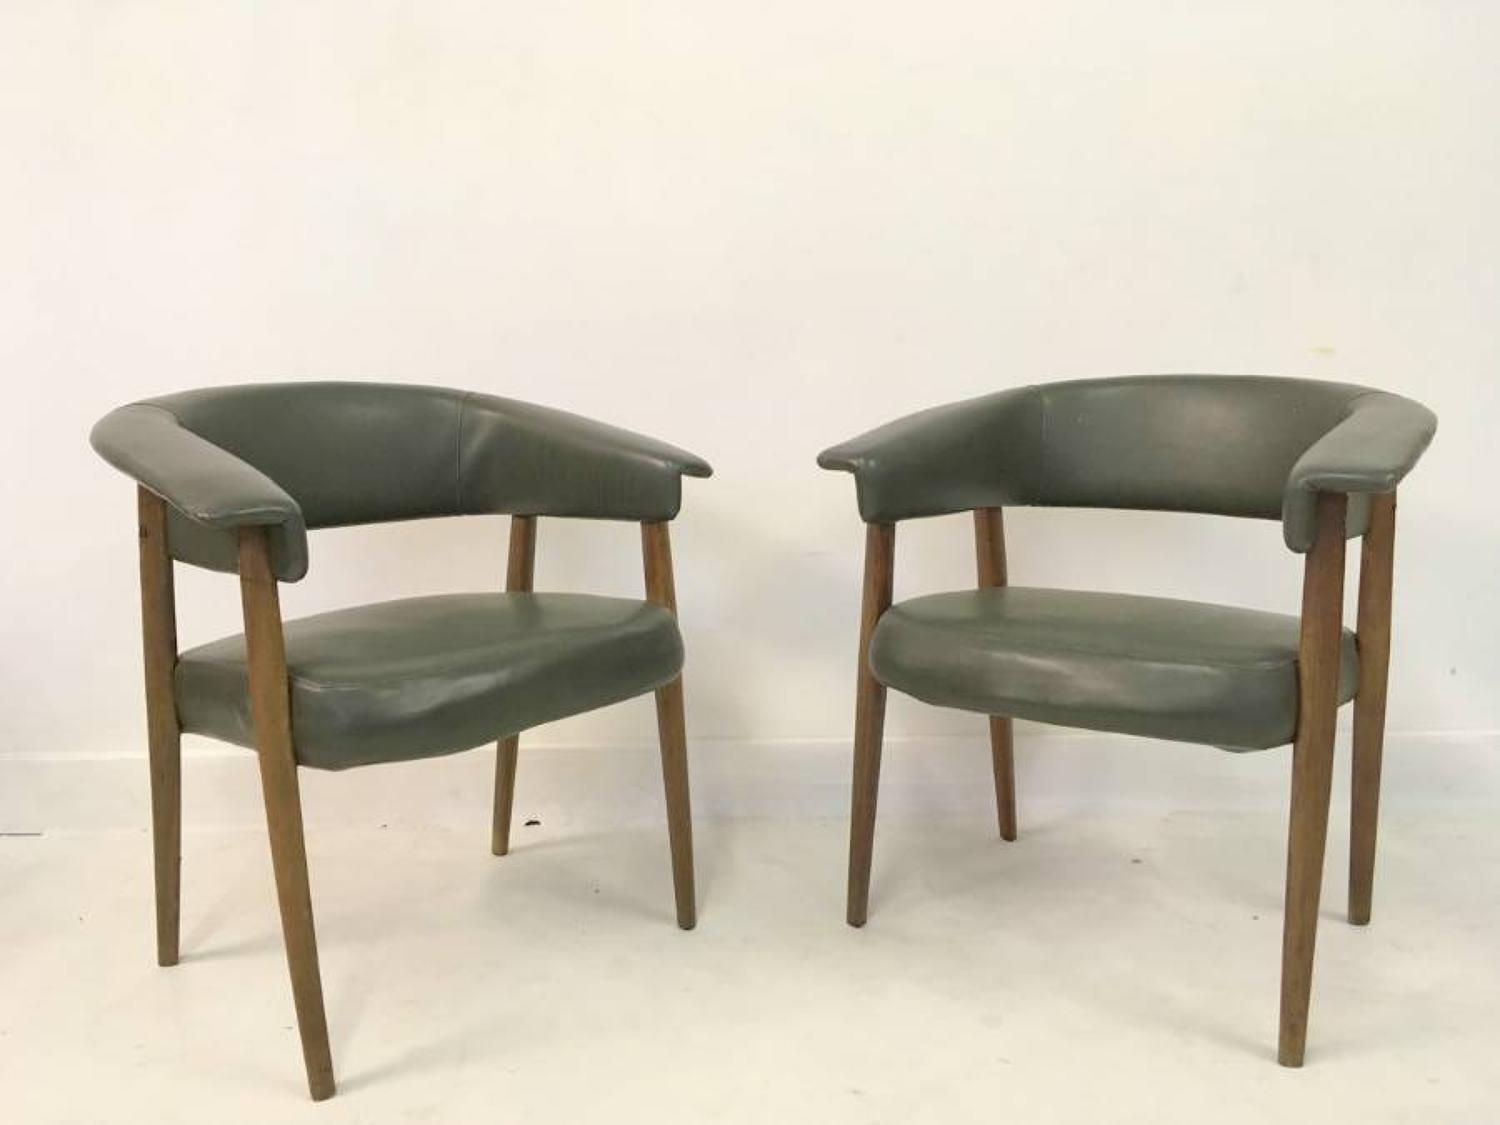 A pair of 1960s Italian armchairs or deskchairs